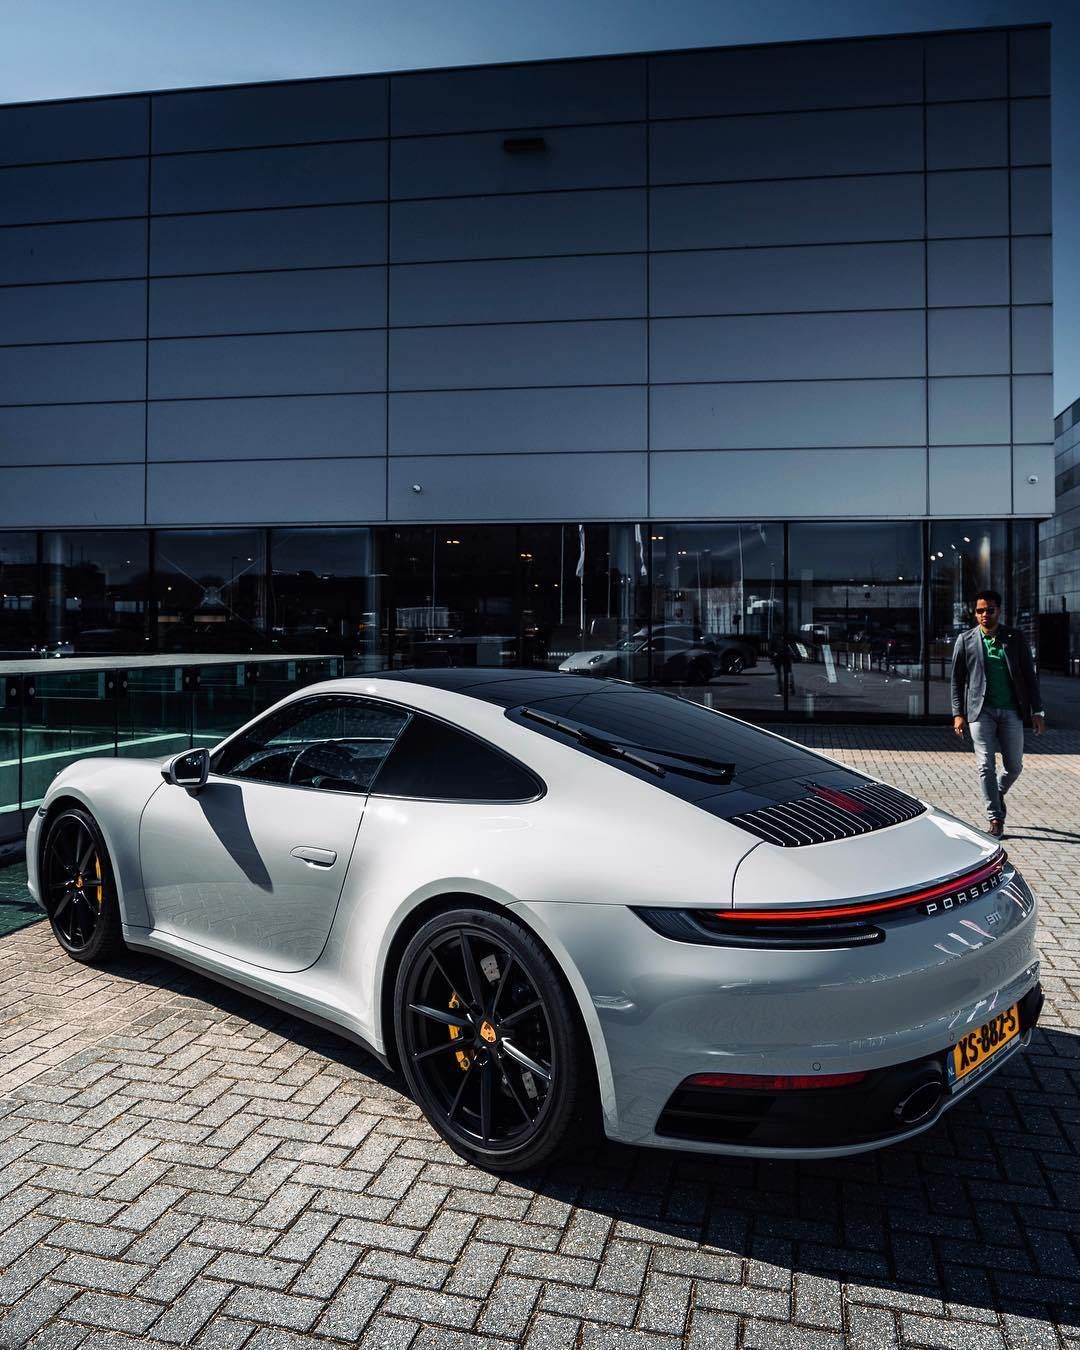 25 Inspirational Luxury Car Photo's of April 2019 · TPOInspiration.